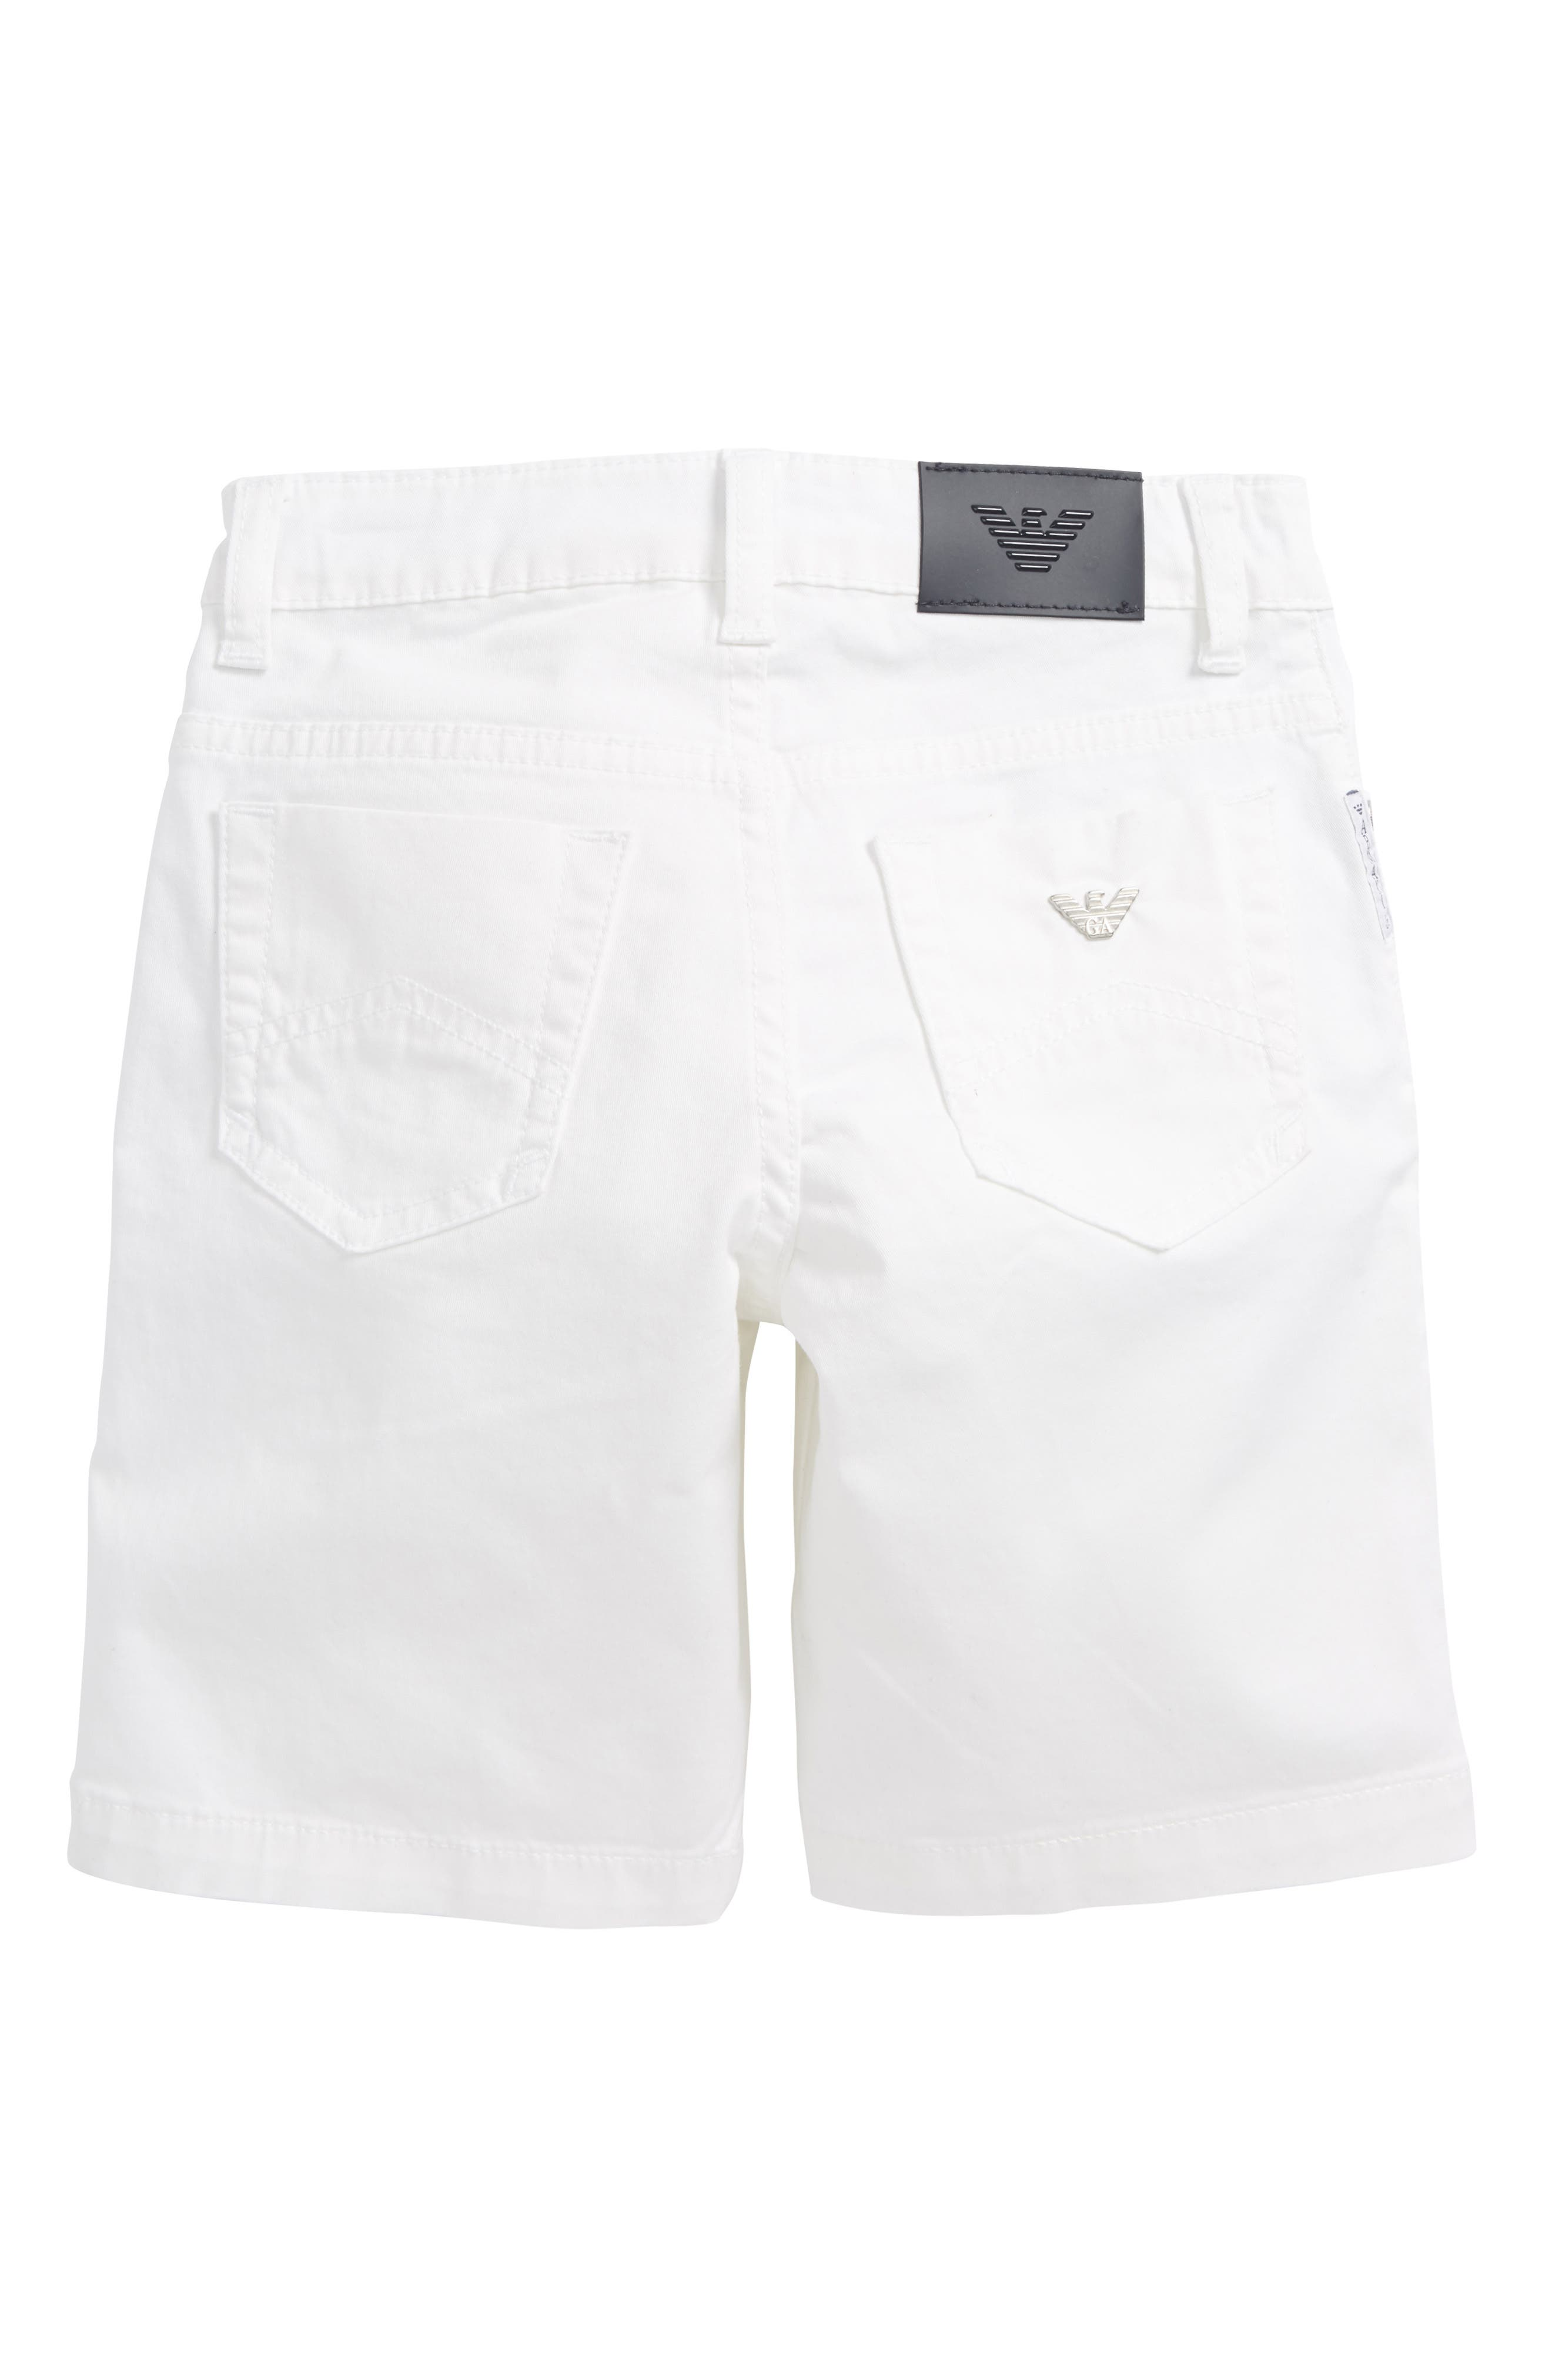 Stretch Cotton Shorts,                             Alternate thumbnail 2, color,                             White